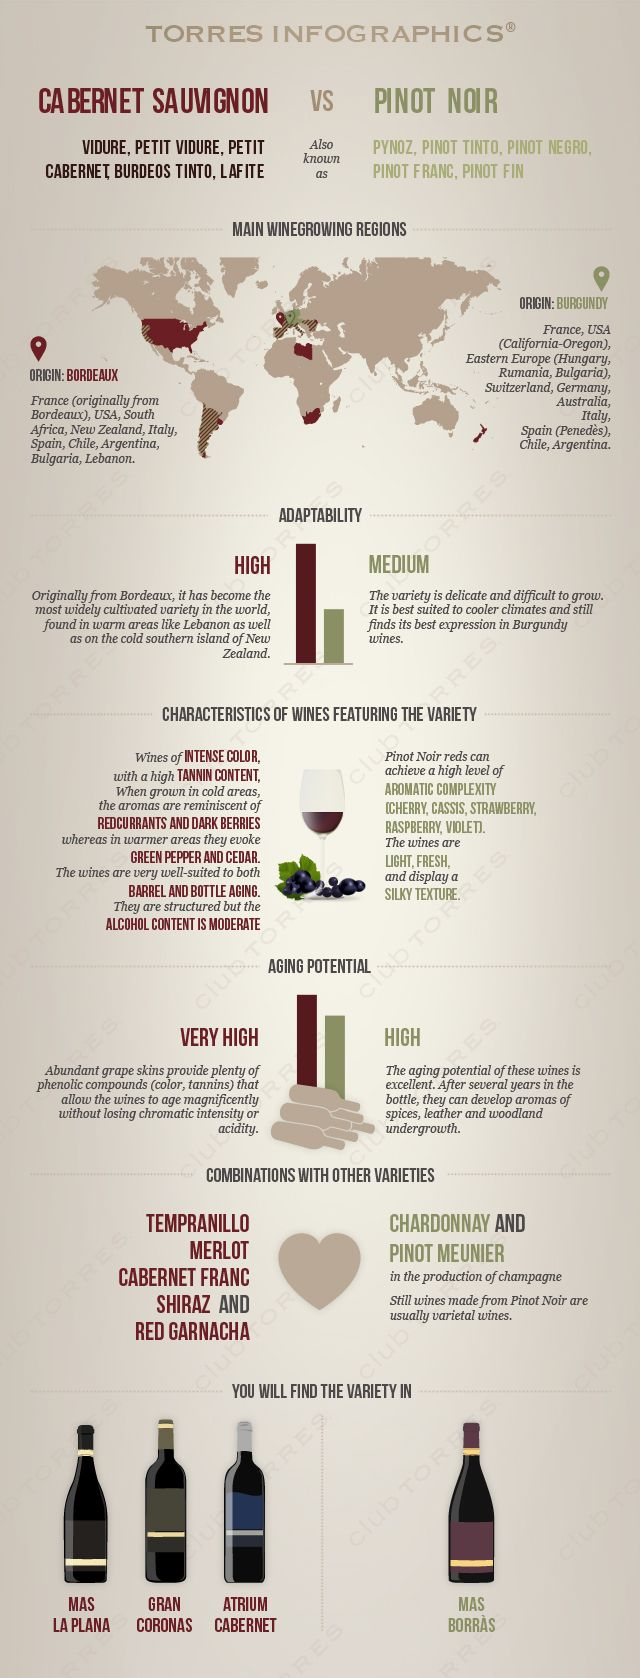 Cabernet Sauvignon vs Pinot Noir: Infographic by 'Club Torres' #wine101 #infographic